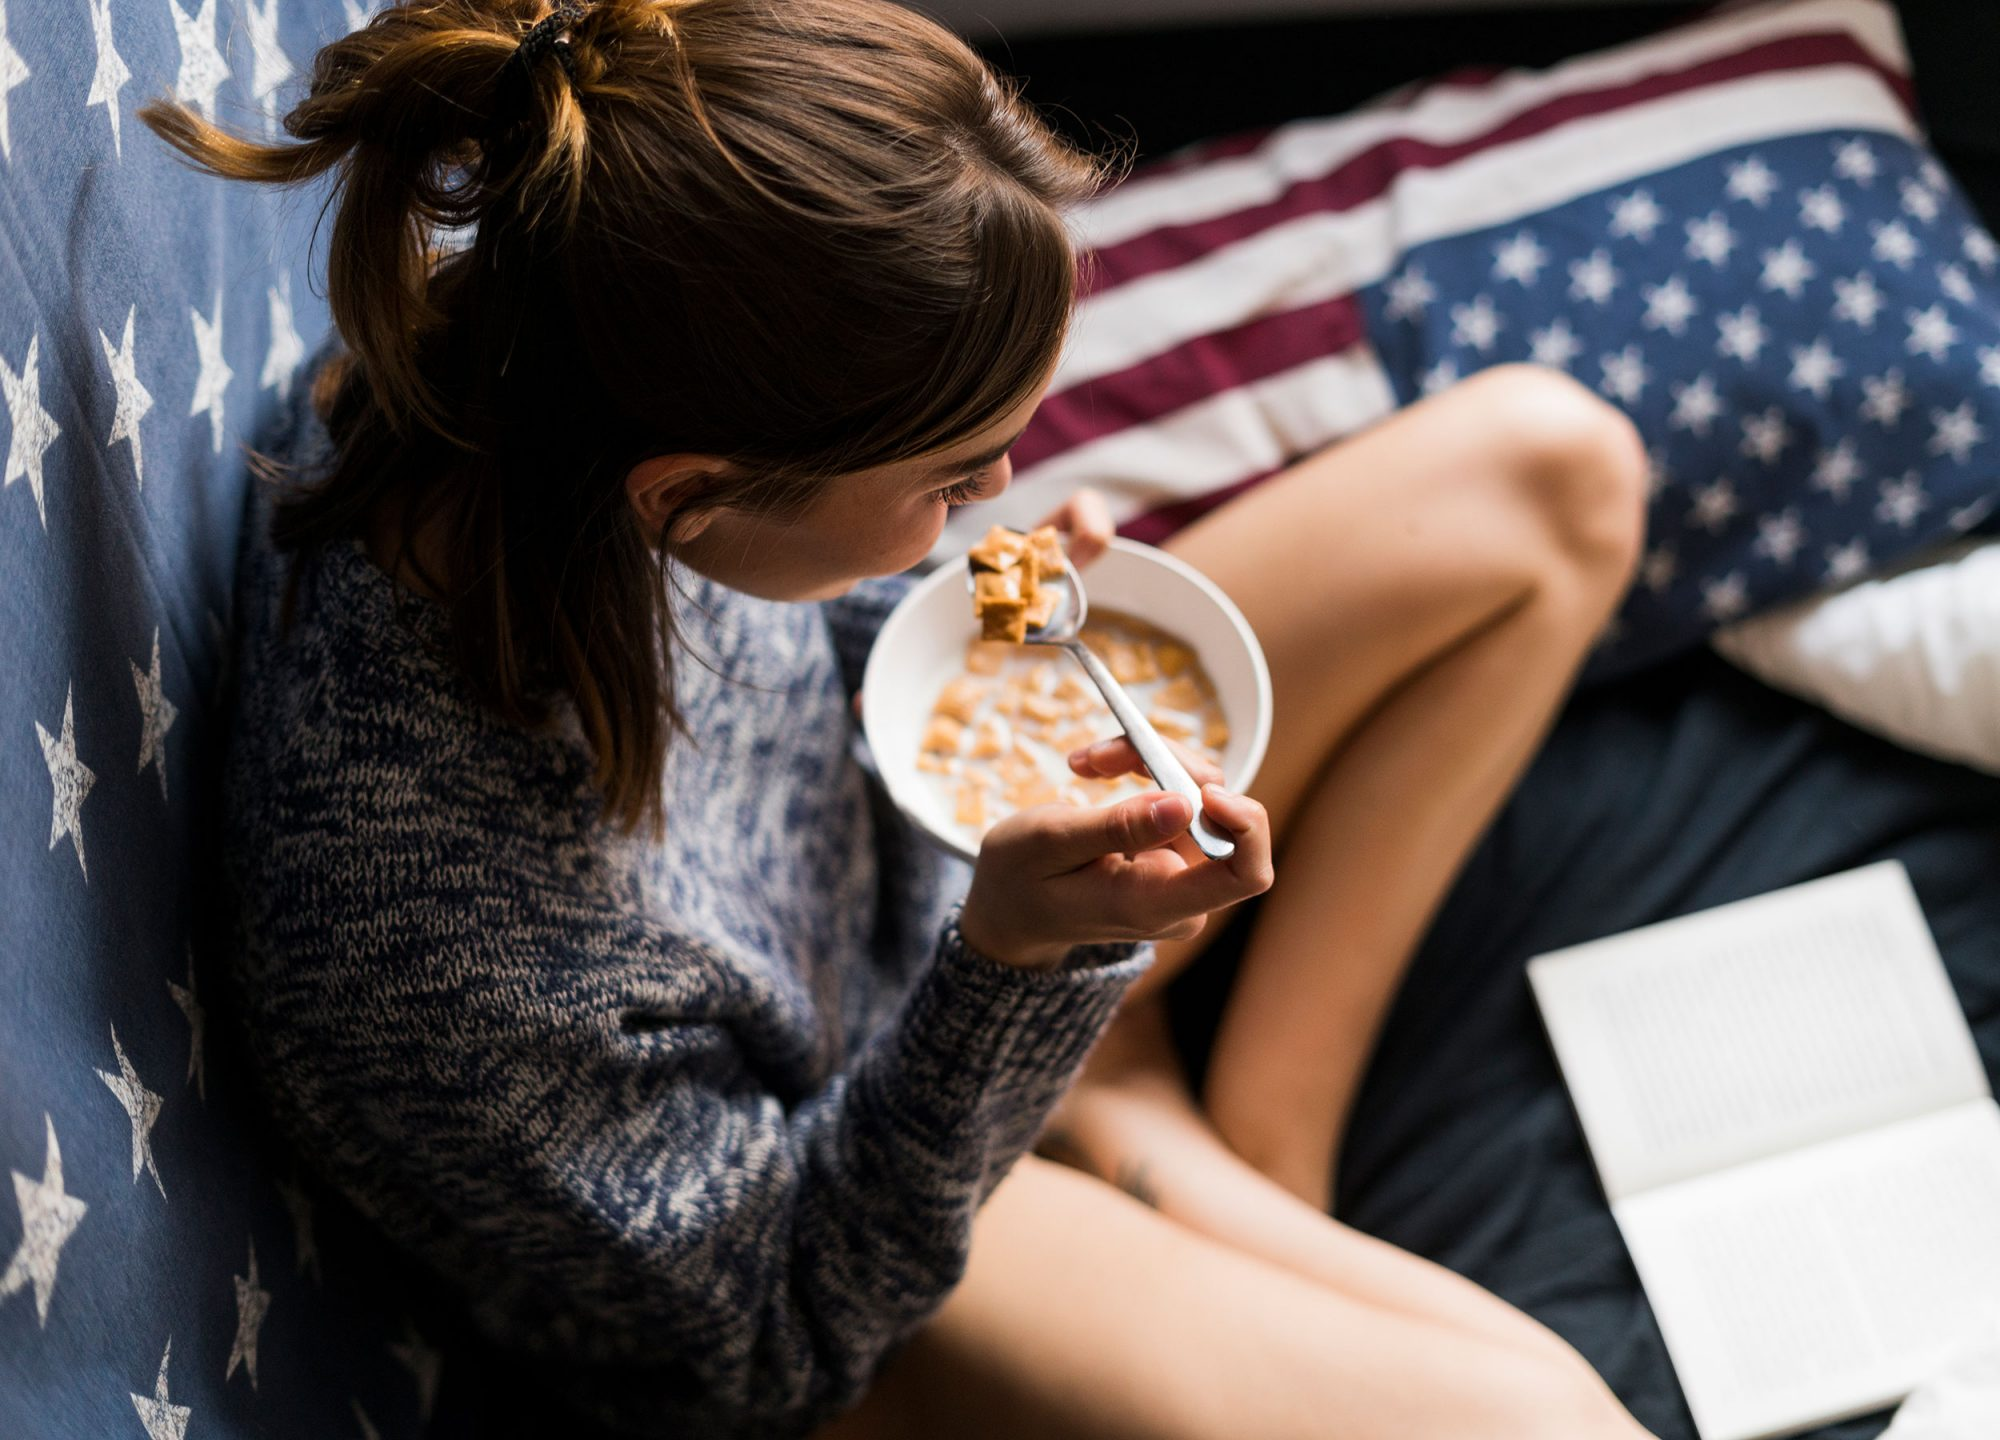 Americans Love Breakfast but Don't Do It Right, Survey Says